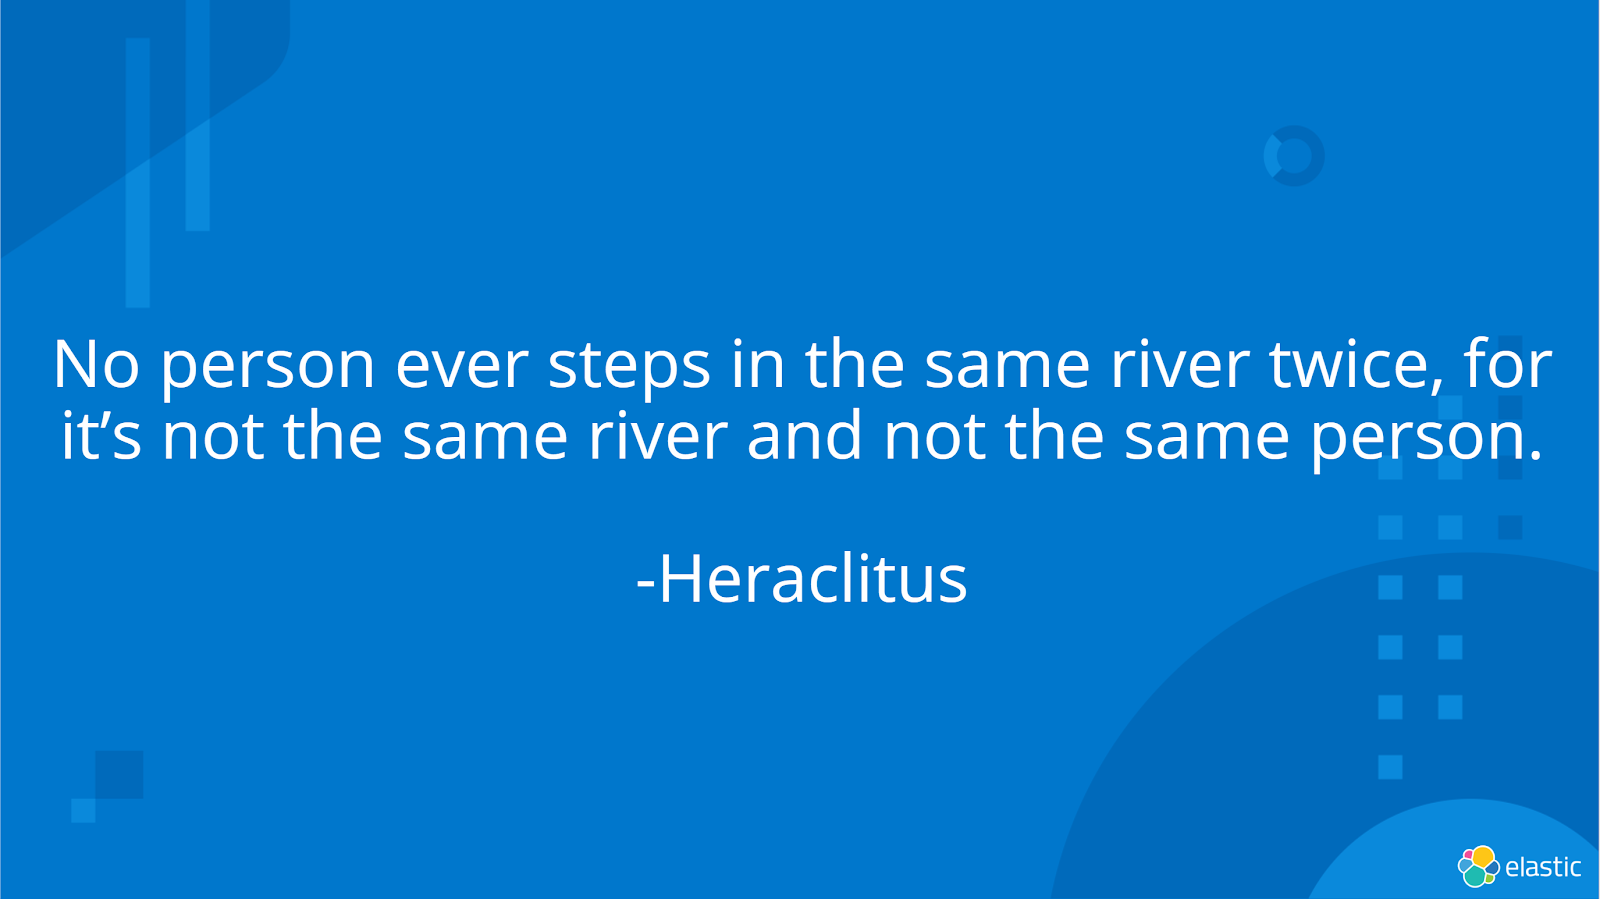 quote-heraclitus-no-person-ever-steps-in-the-same-river-twice.png